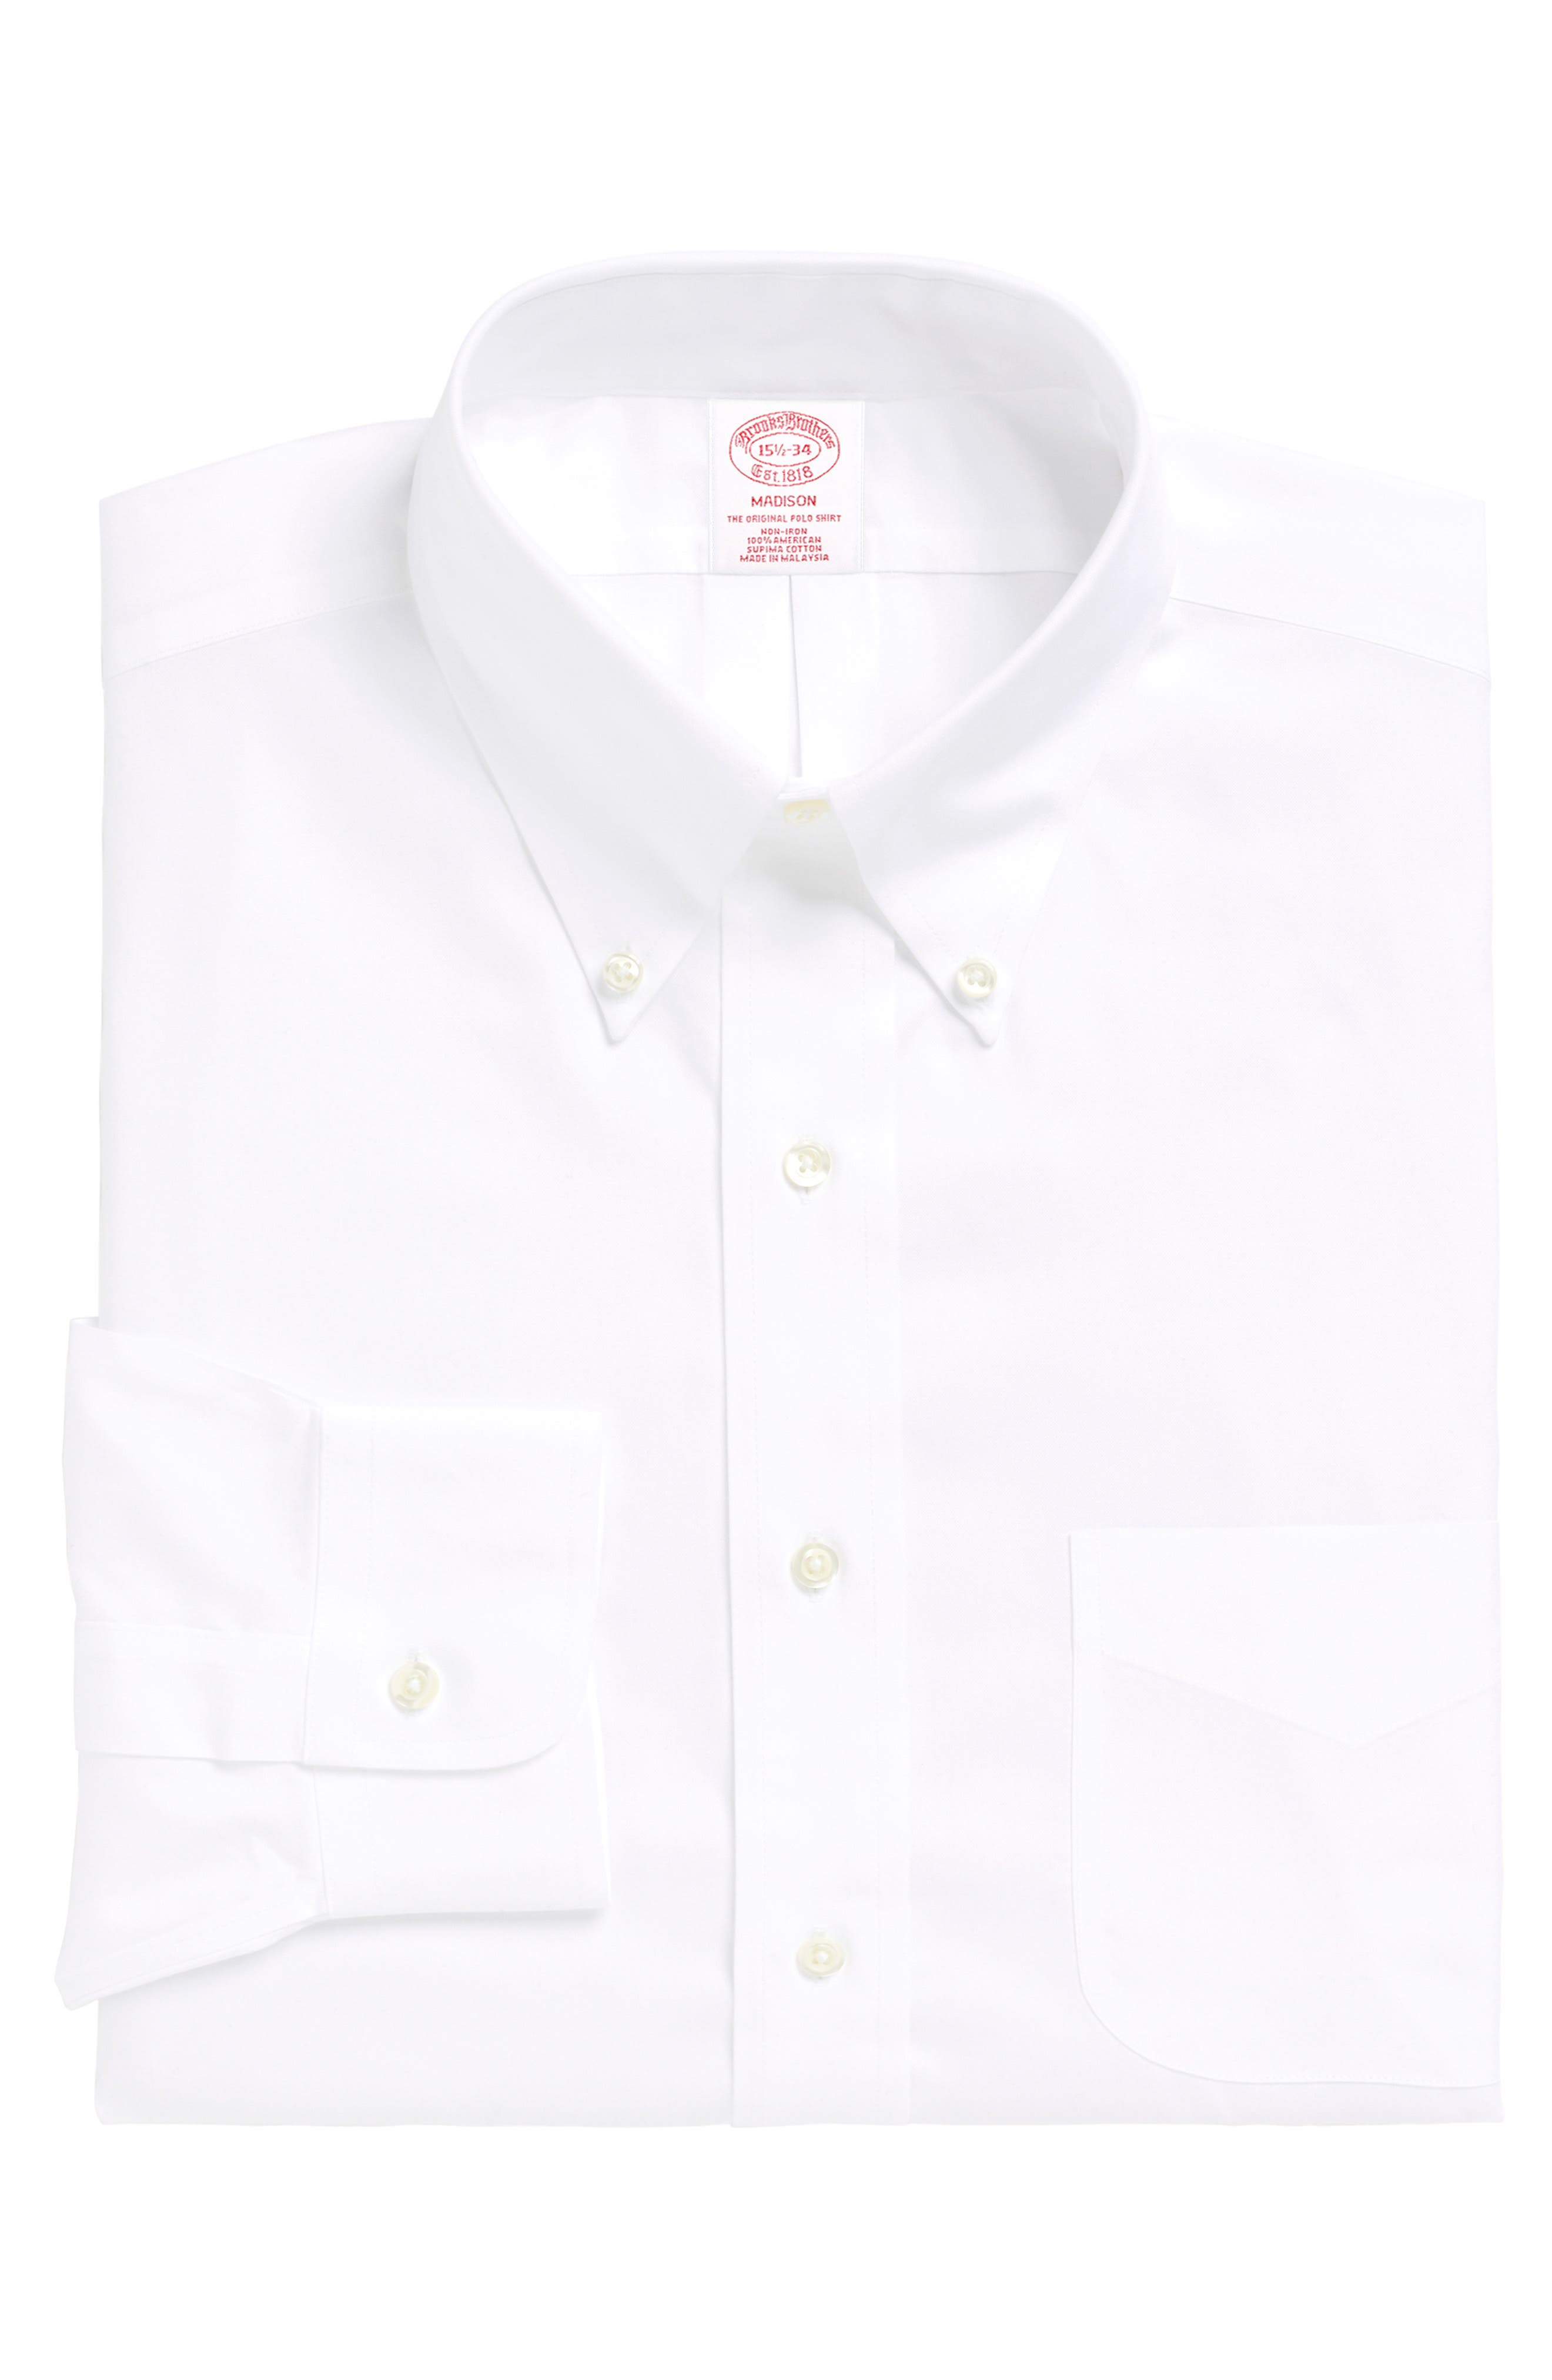 Classic Fit Solid Dress Shirt,                             Main thumbnail 1, color,                             WHITE